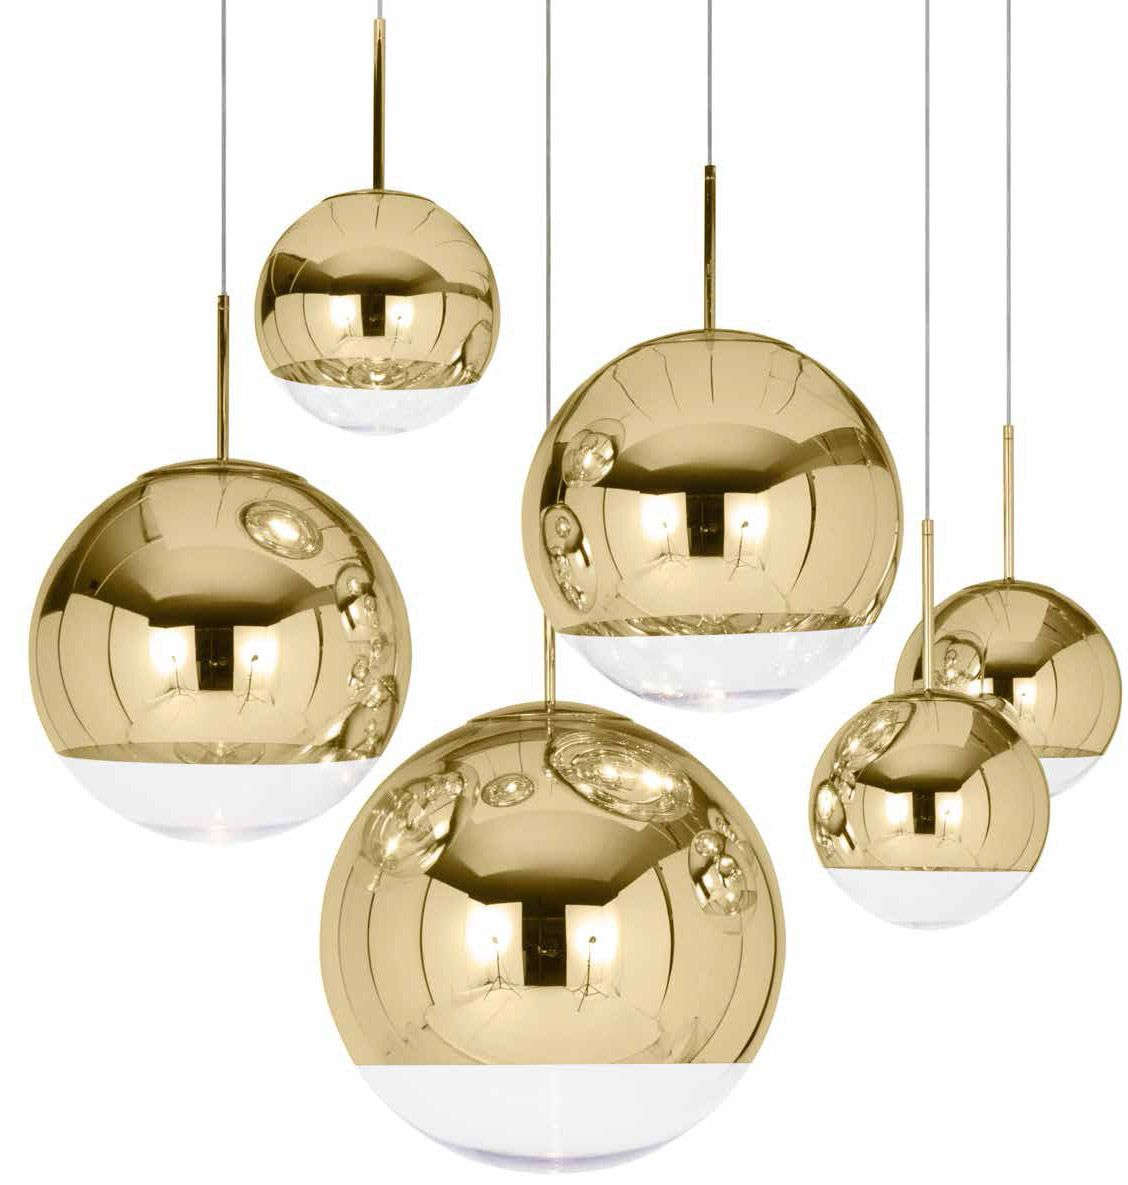 Tom Dixon Mirror Ball Gold Pendant Lamp Tom Dixon Ball Pendant Lighting Glass Ball Pendant Gold Pendant Lighting